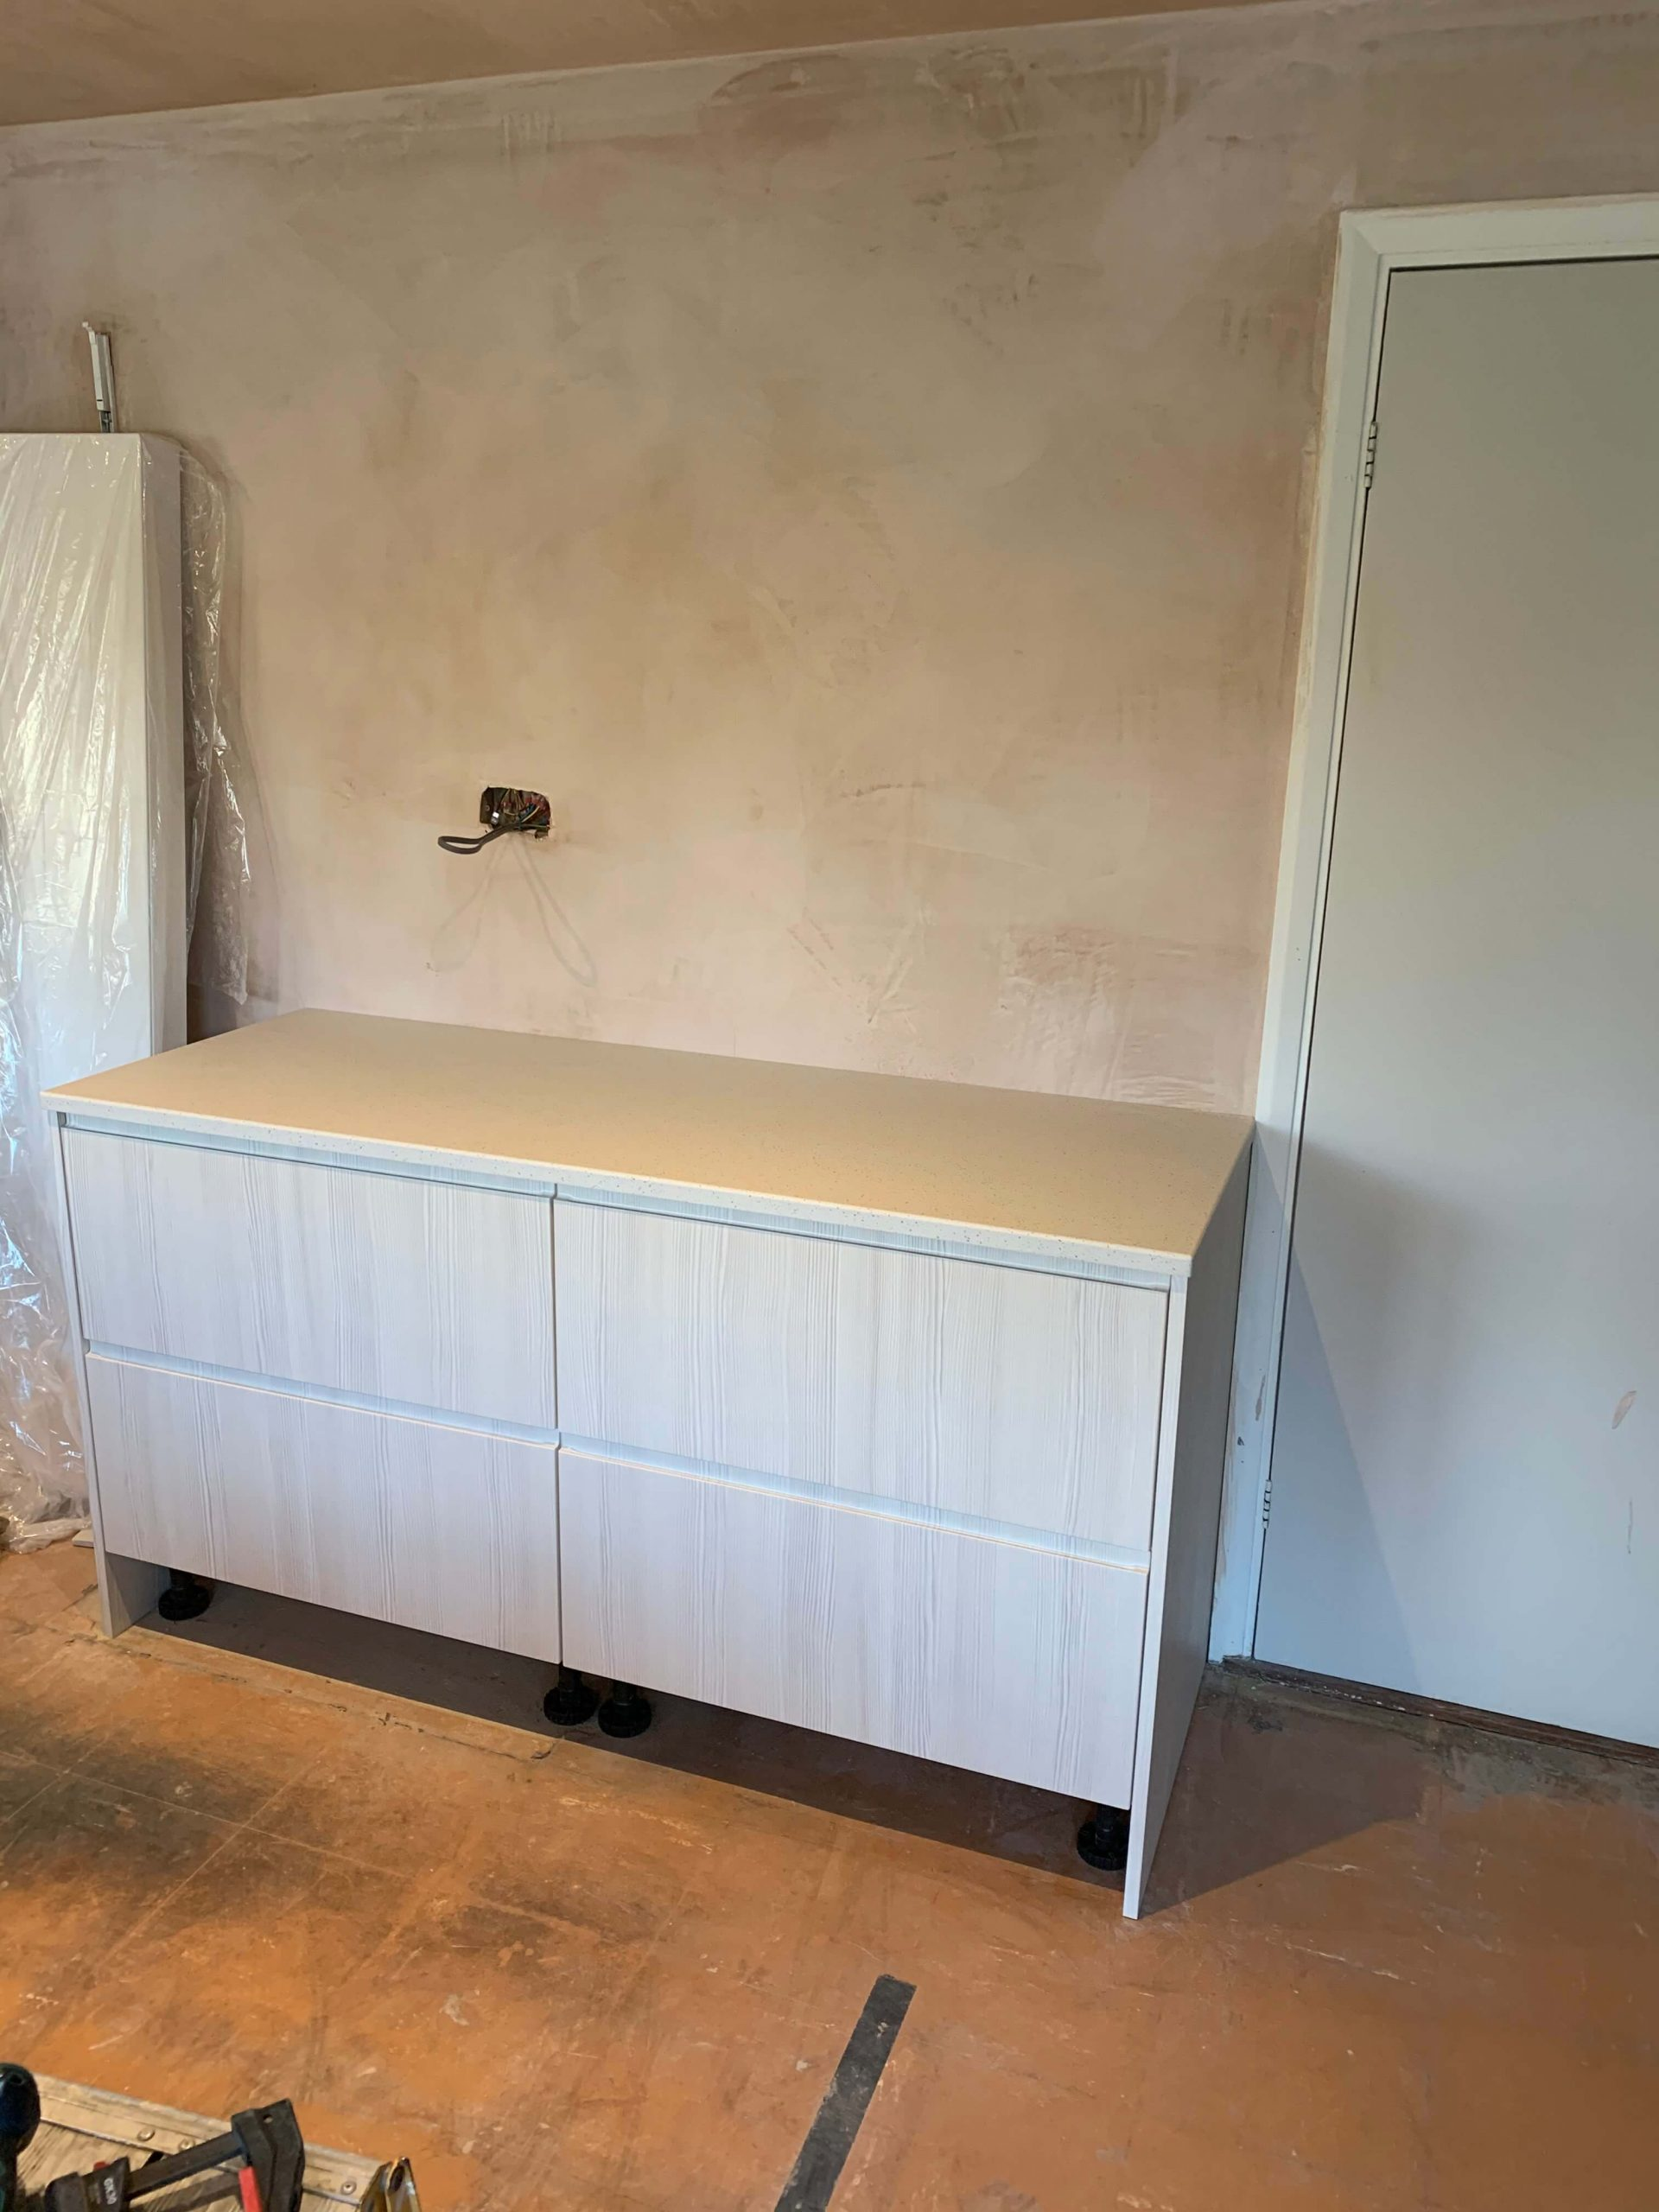 Dresser base with worktop fitted